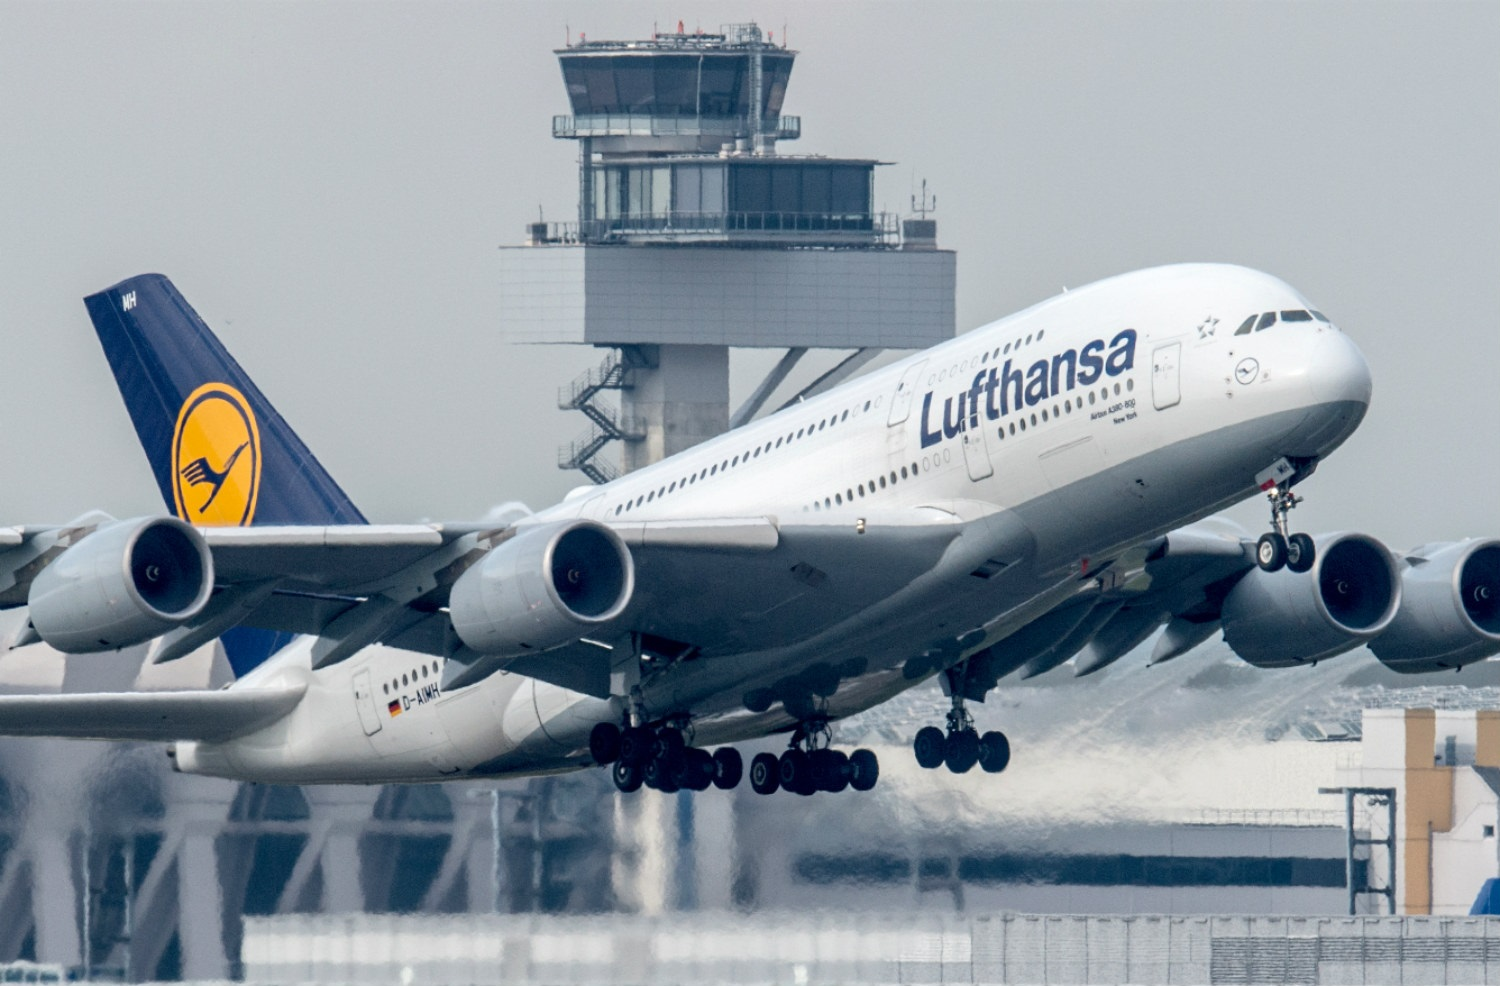 Lufthansa Airline Reports $2.3b Loss Due To Pandemic Effect